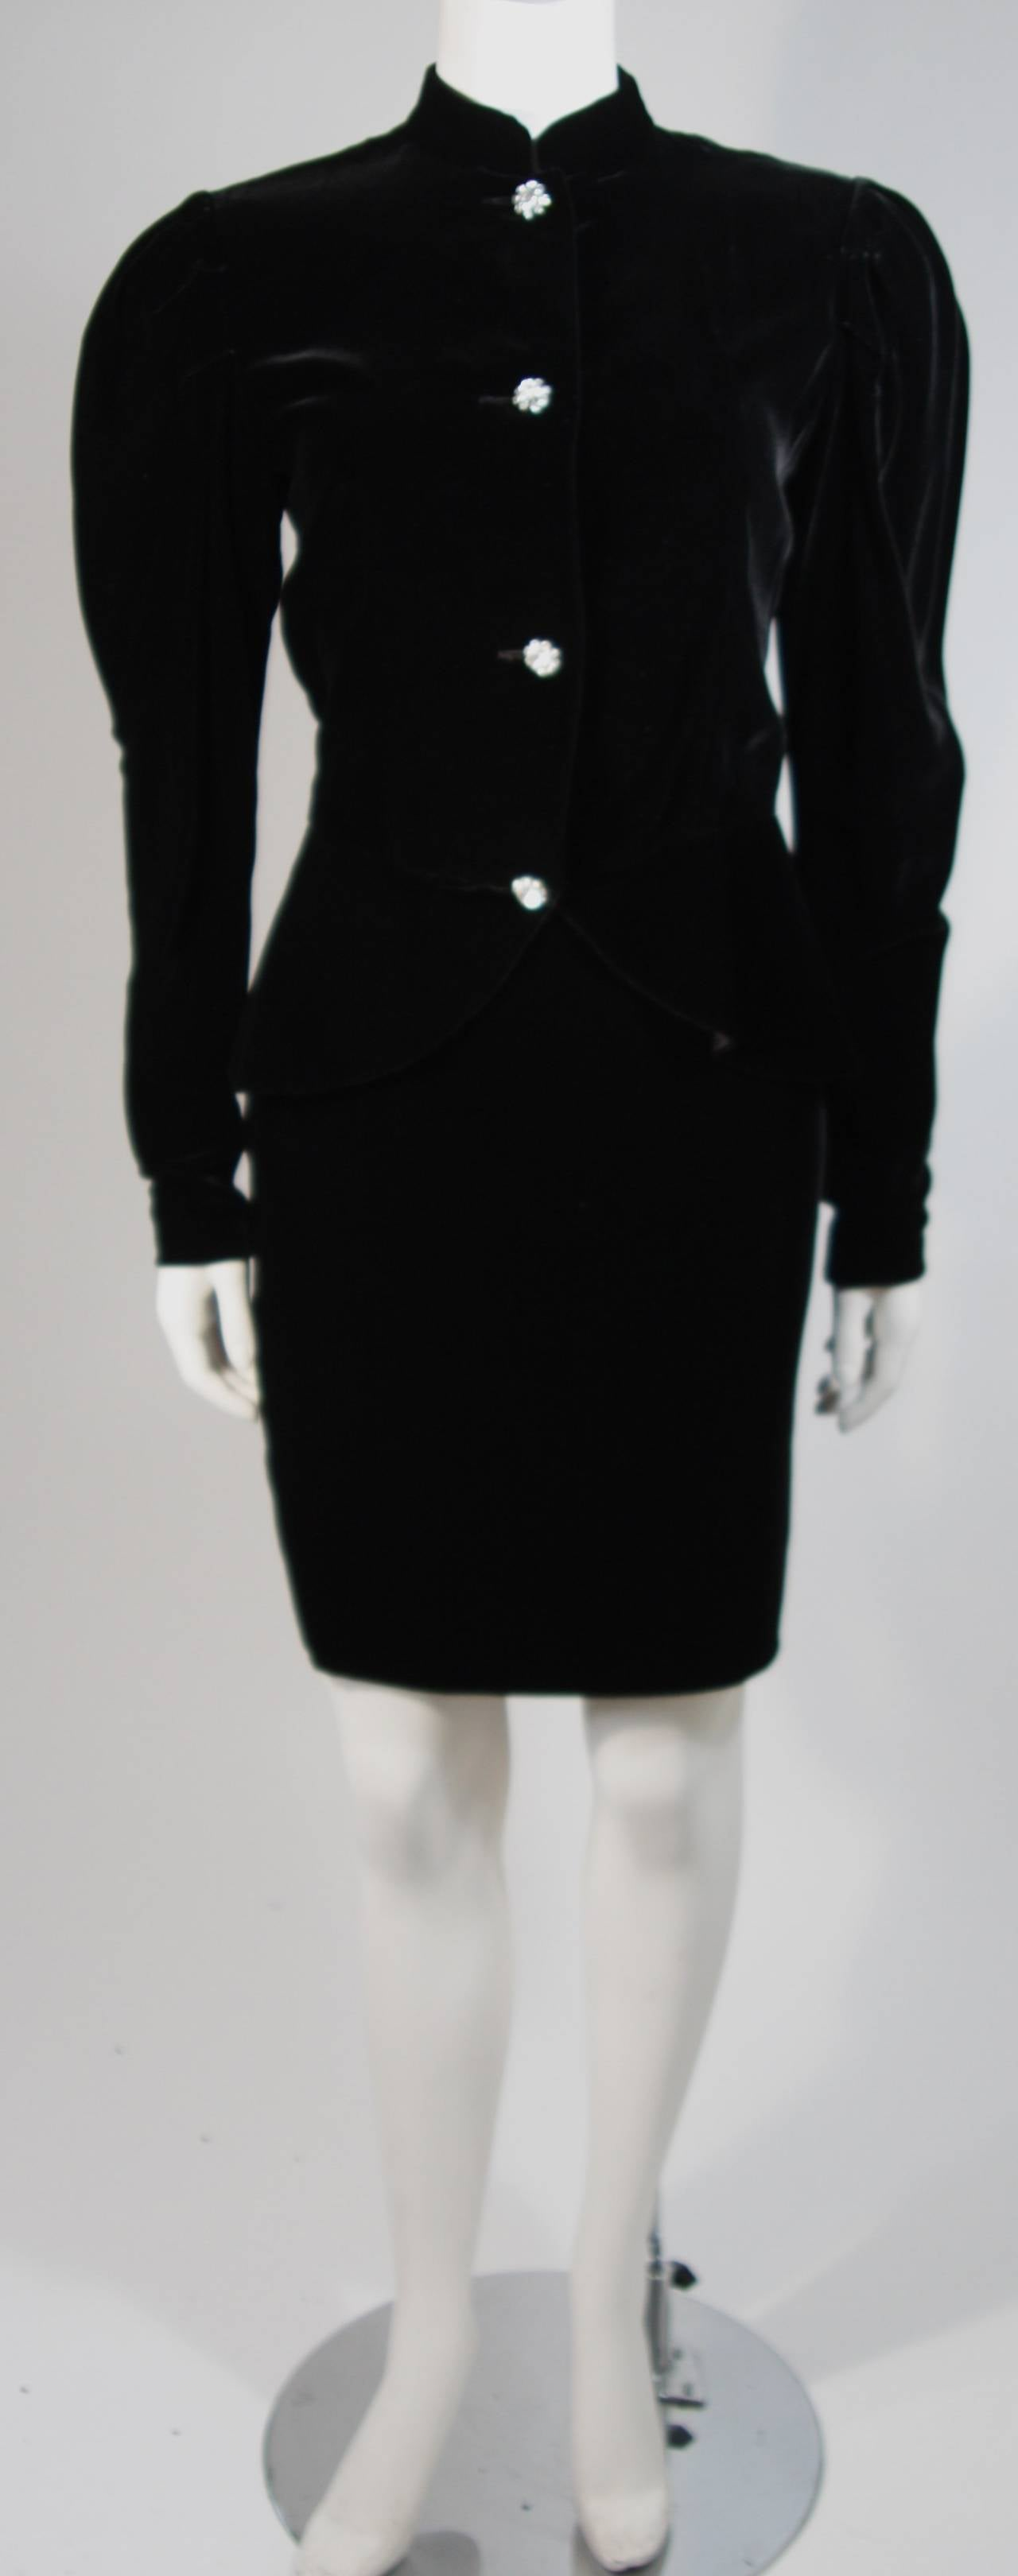 This Vicky Tiel skirt suit is composed of a black velvet and features rhinestone buttons. There are gathers at the sleeve for a dramatic effect and a peplum  style waist. The pencil style skirt has a zipper closure for ease of access. In excellent